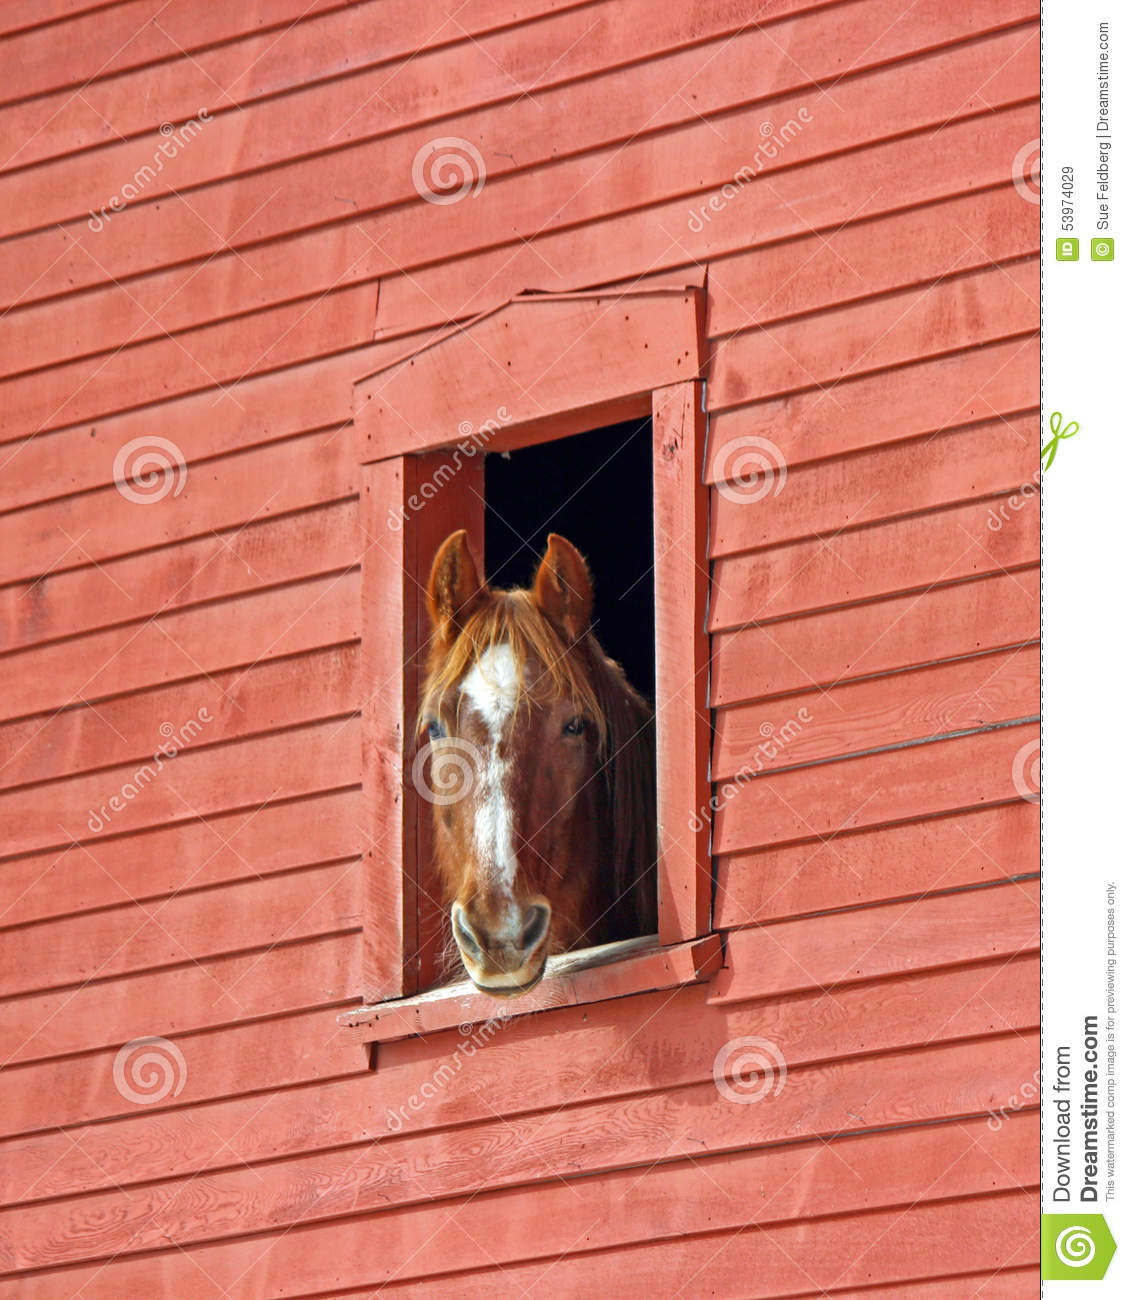 Horse in the barn stock photo image 53974029 for Window horses